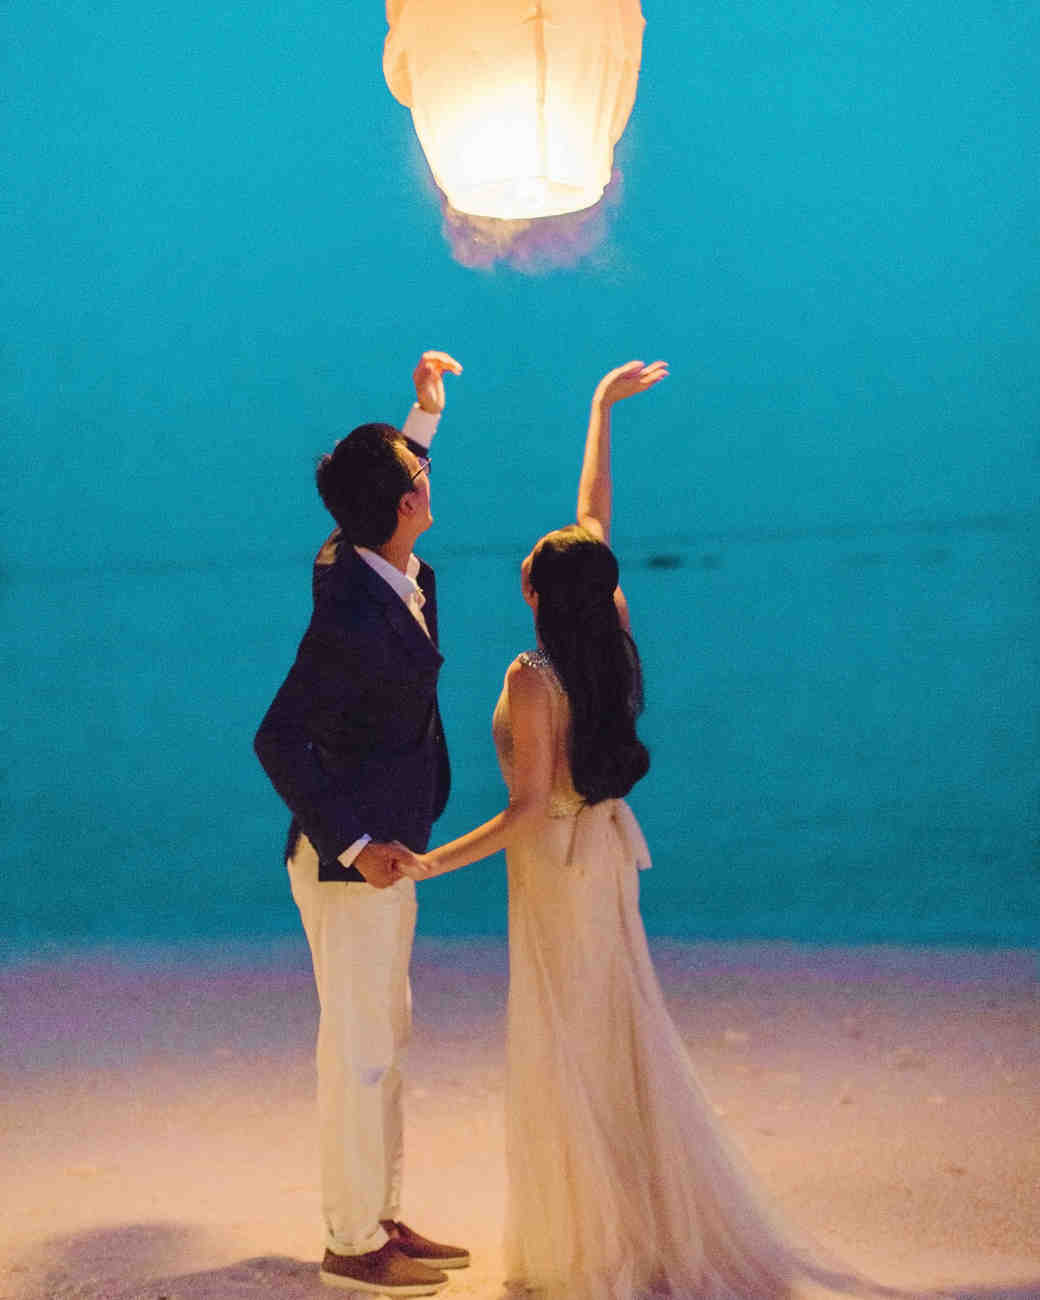 wedding wish lanterns